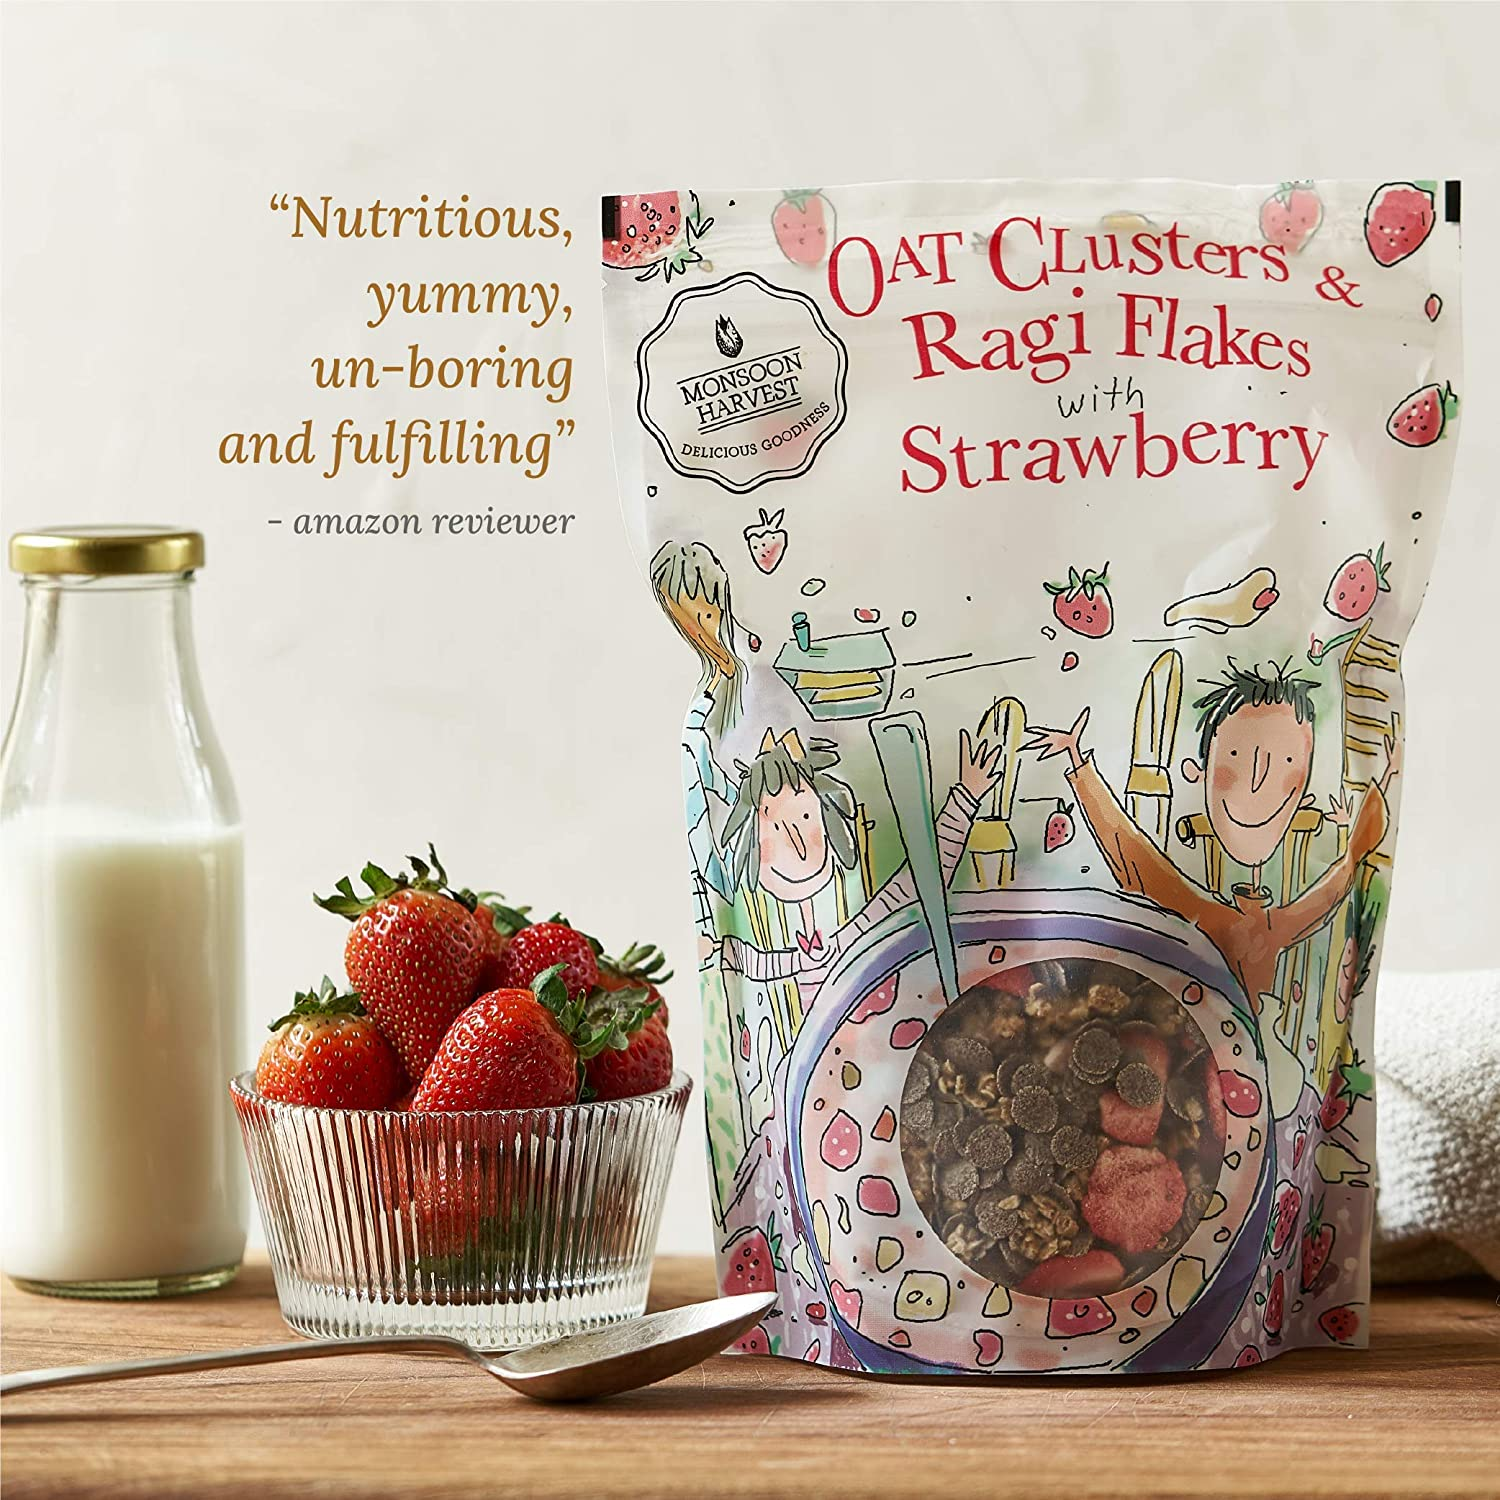 Monsoon Harvest Oats Clusters & Ragi Flakes with Strawberry Breakfast Cereal